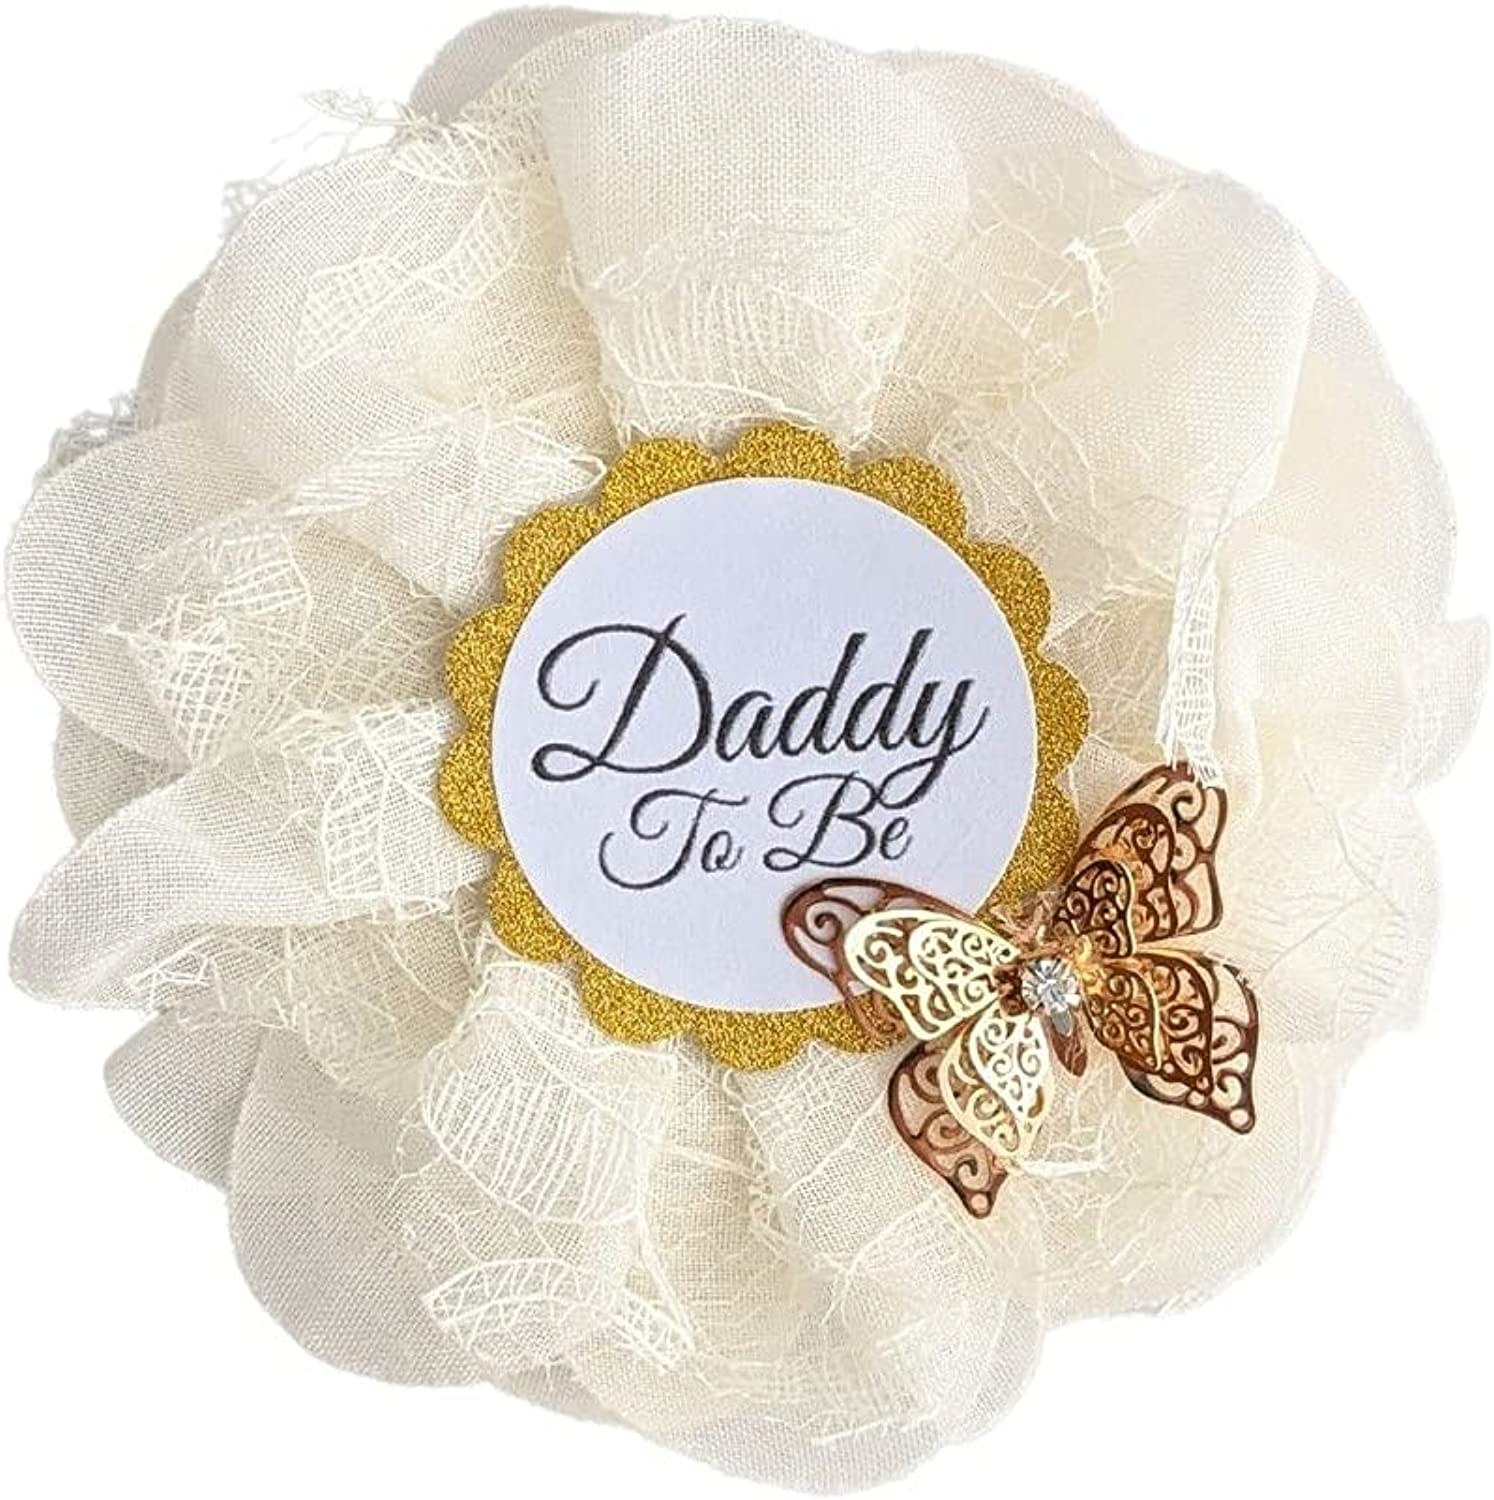 Daddy To Be Button | Dad To Be Pin| Gold Butterfly Baby Shower Ribbon | 3.5